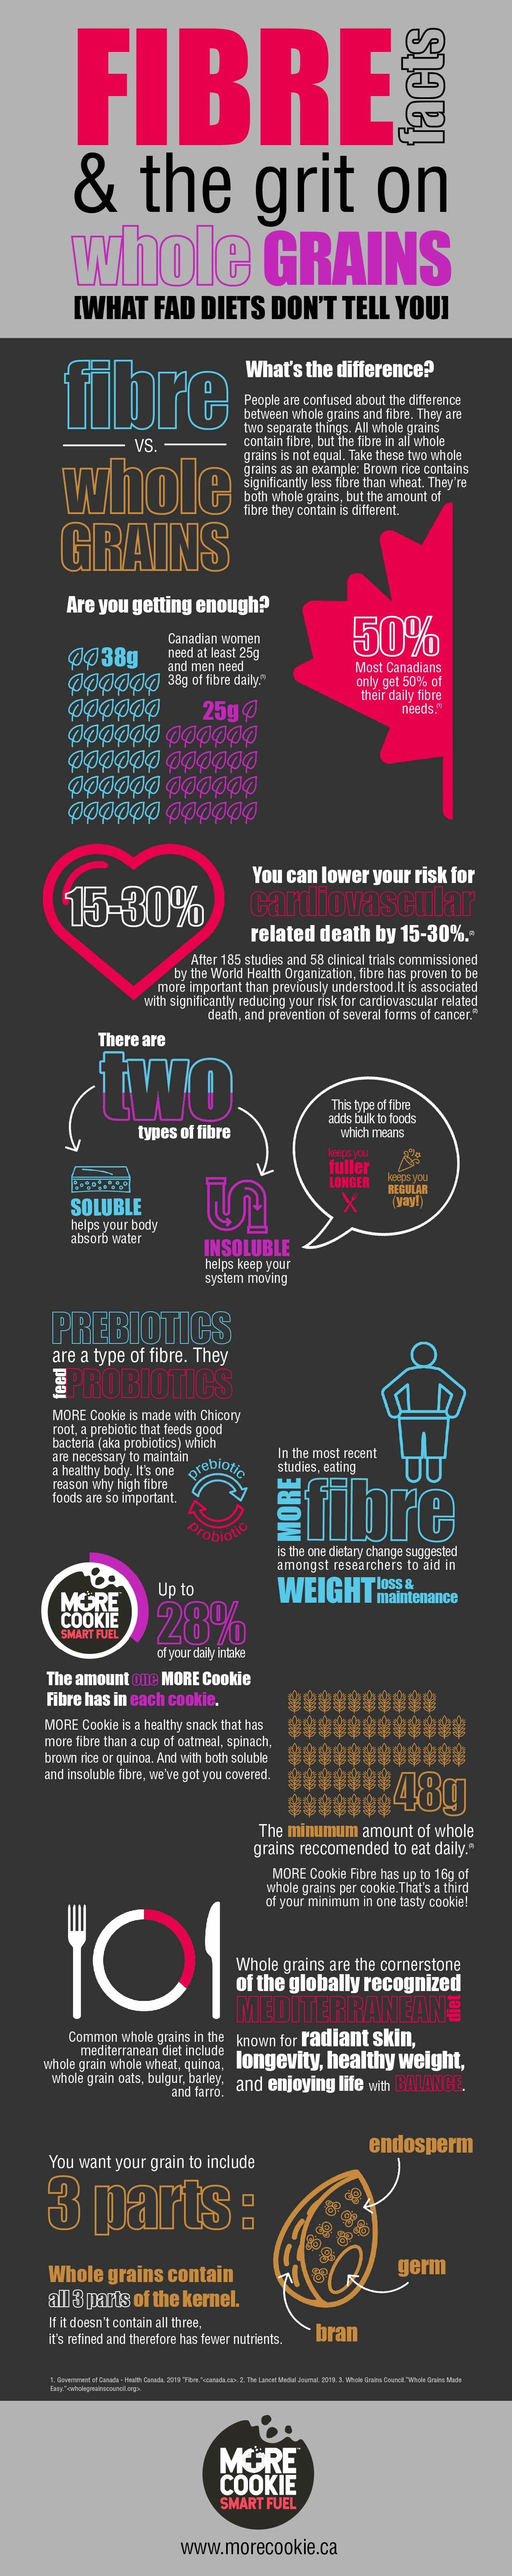 The Infographic about the Facts on Fibre and Importance of Whole Grains